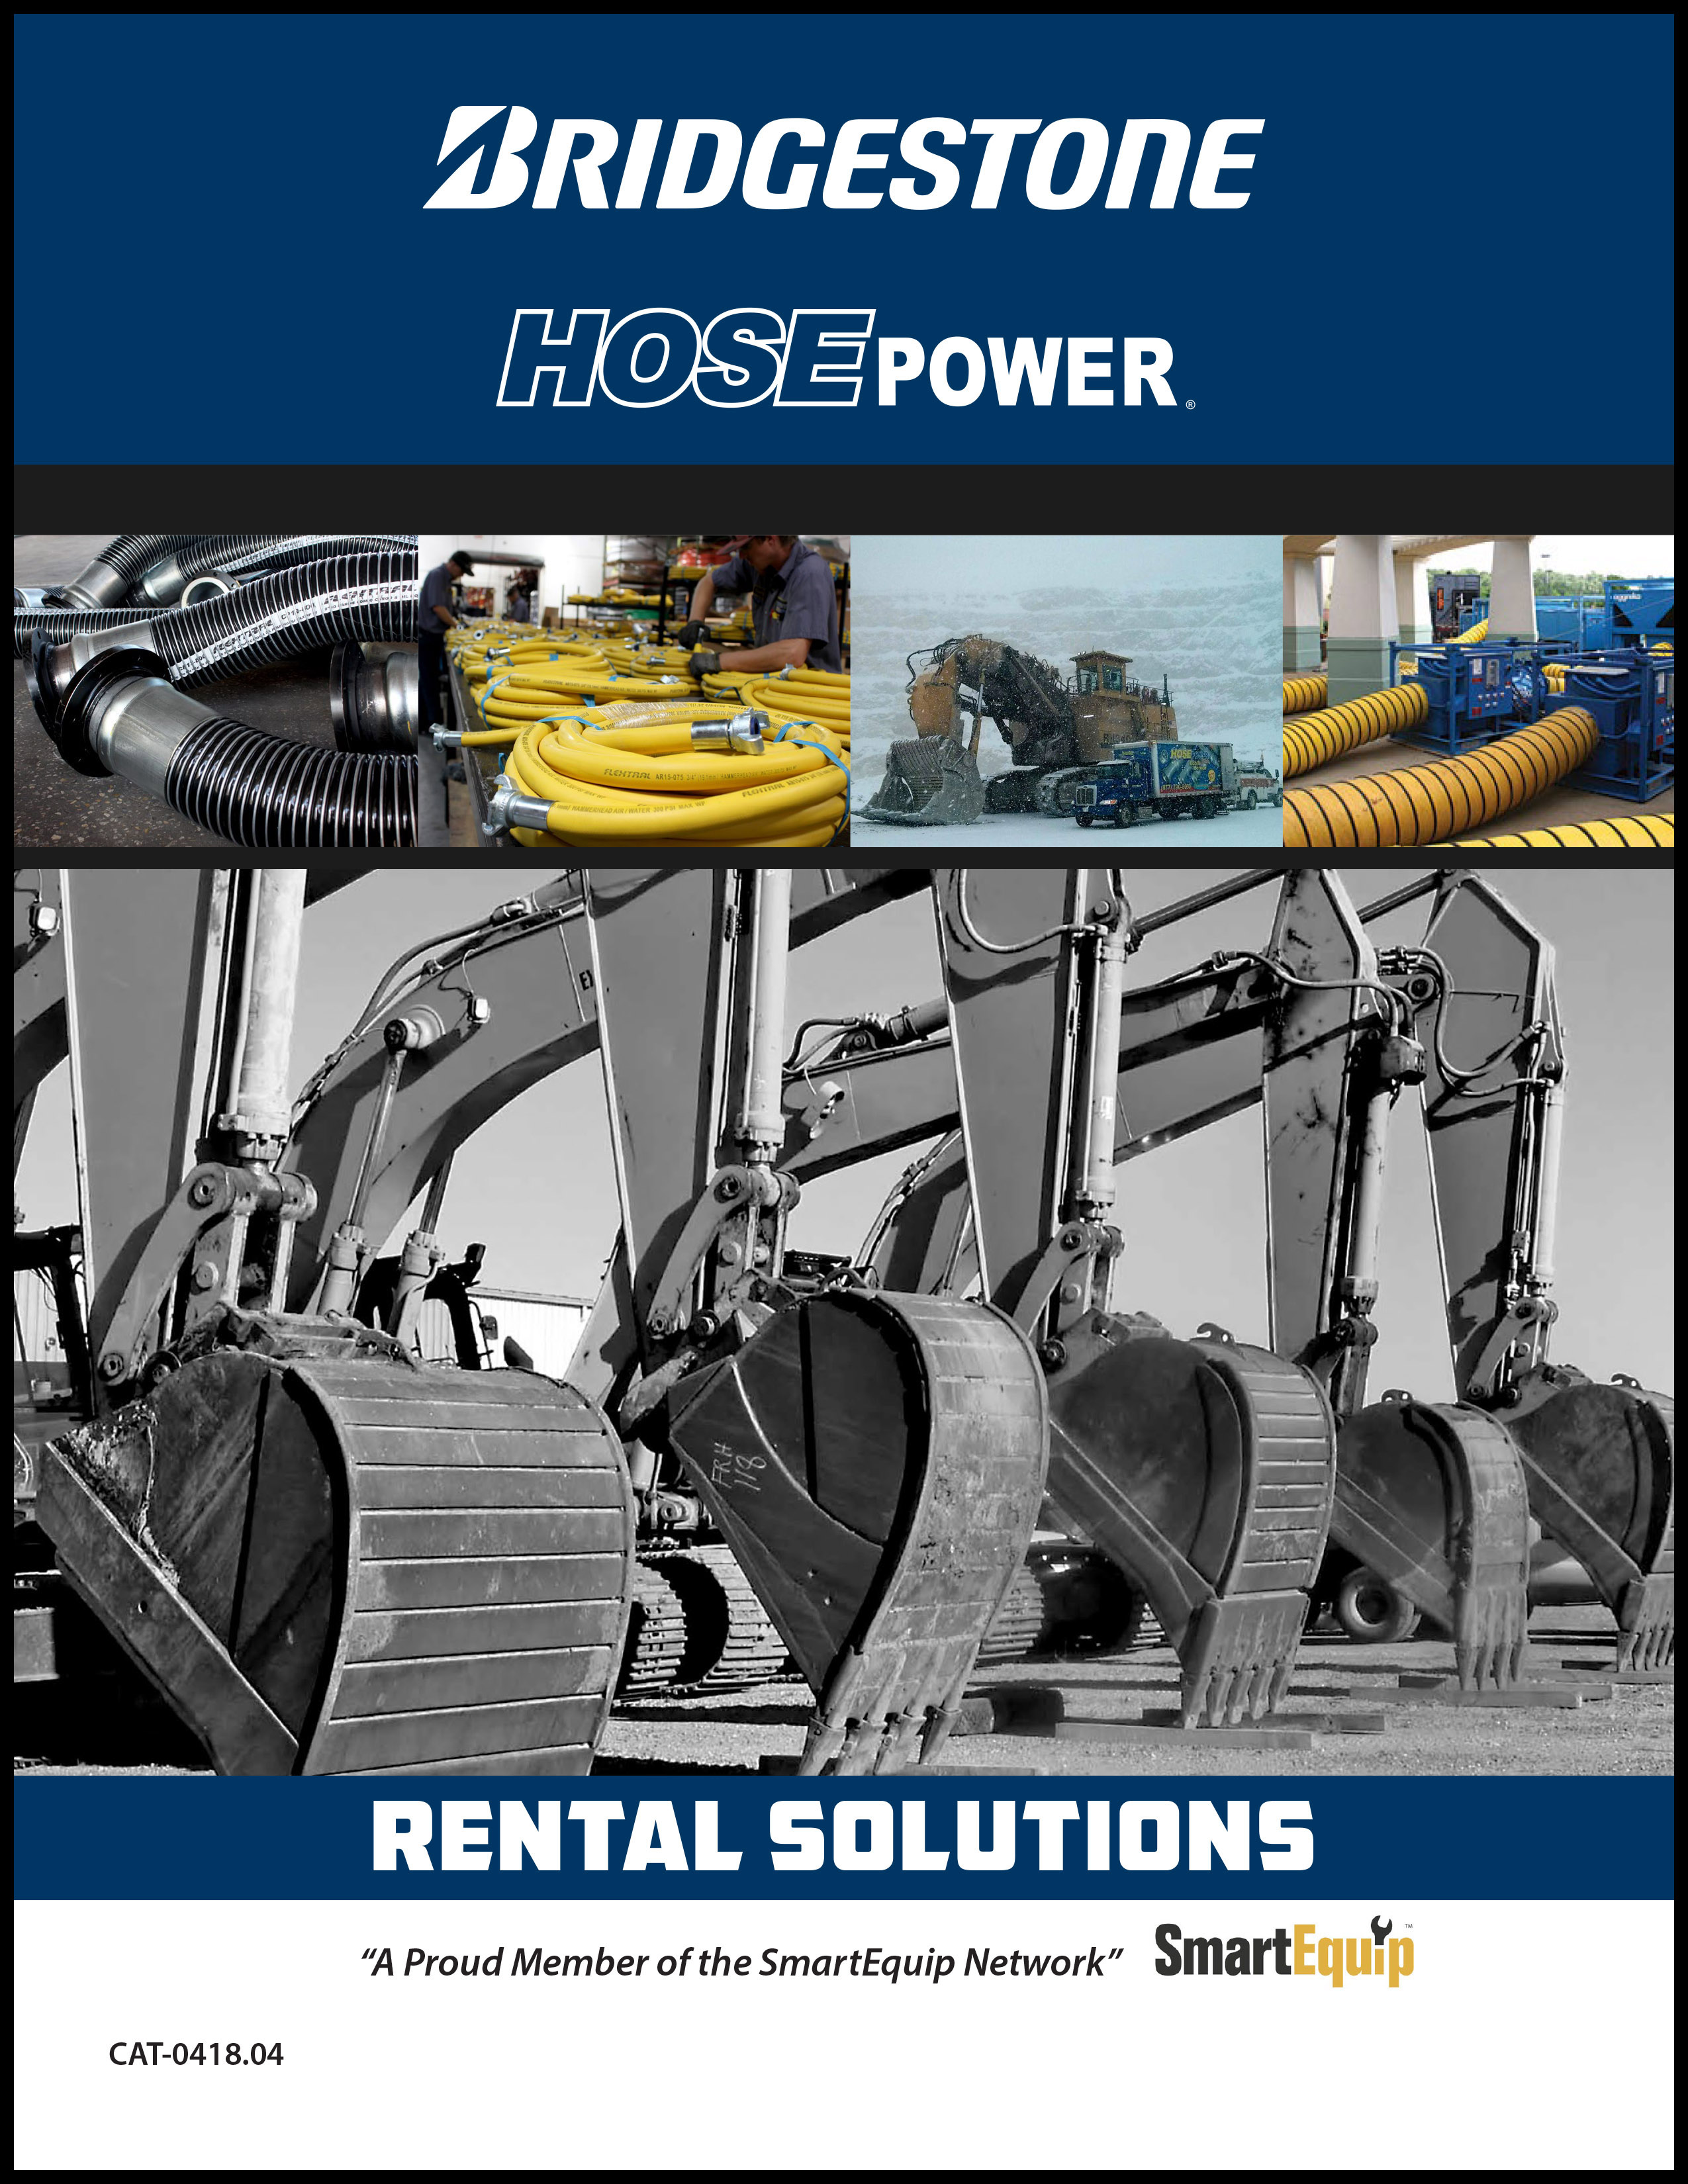 FLEXTRAL CATALOGS - Flextral - Hydraulic and Industrial Hose Products